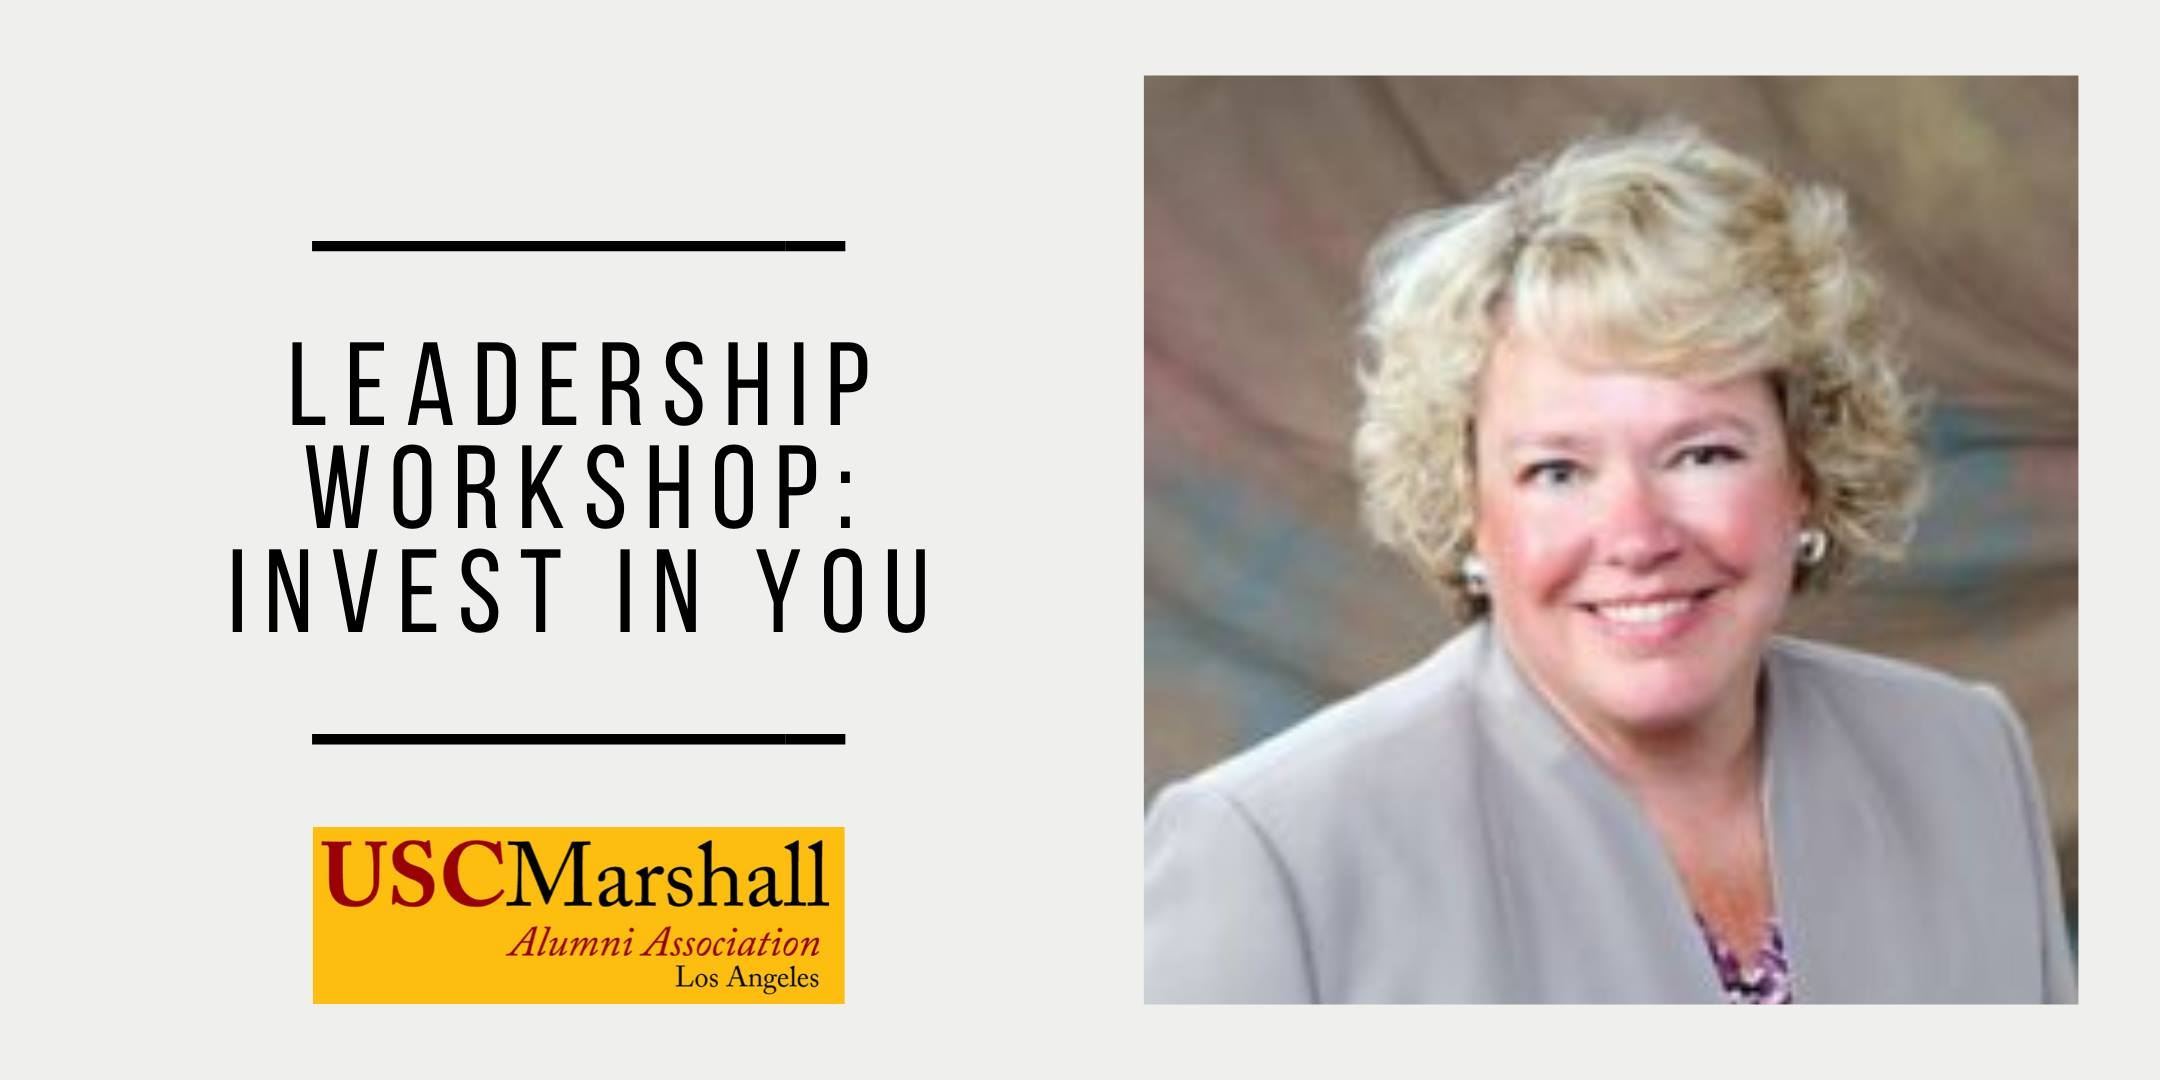 Leadership Workshop: Invest in You